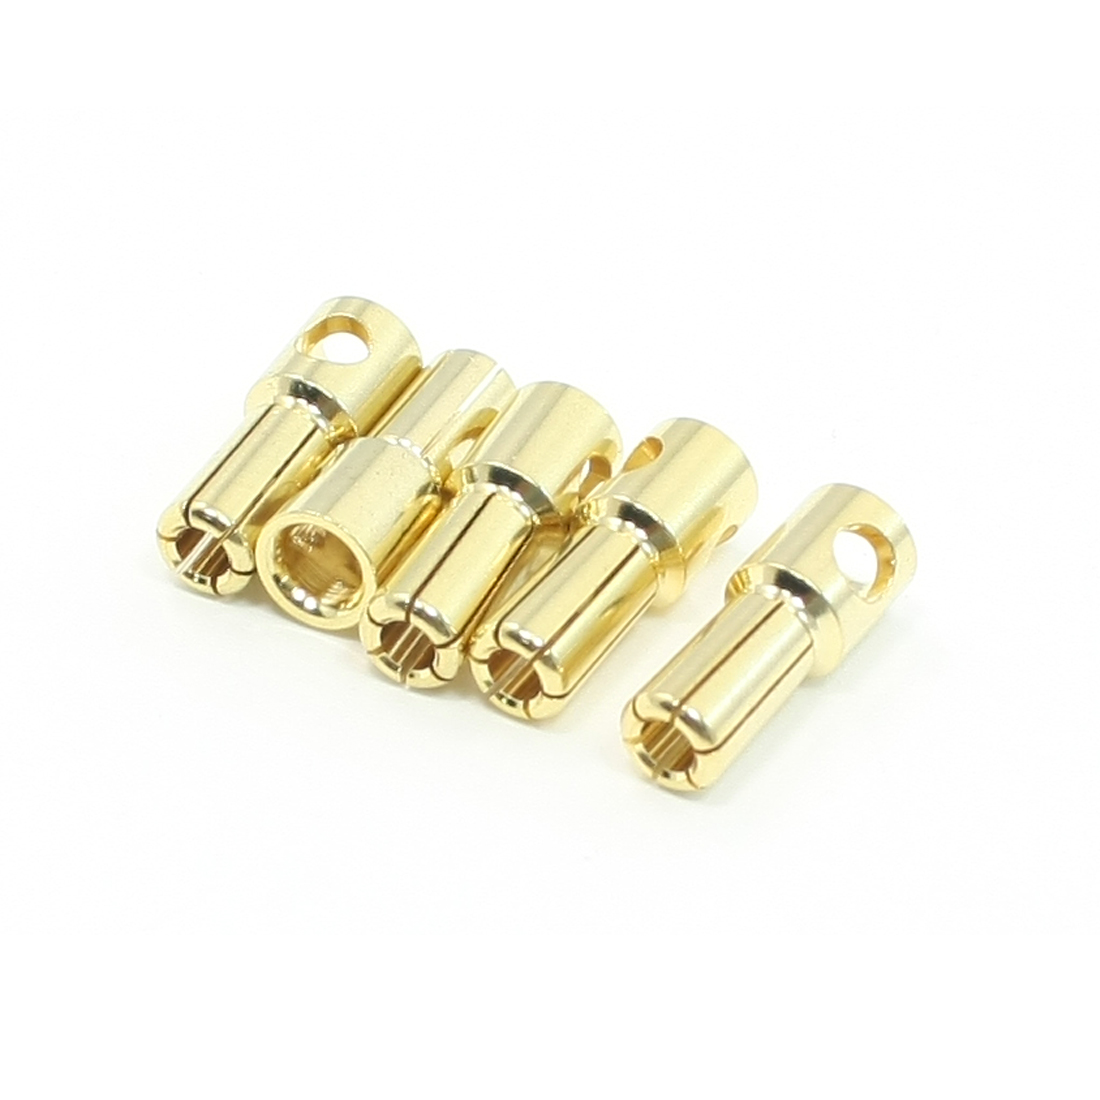 5 Pcs RC Model Li-Po Battery Male Banana Cone Connector 5.5mm